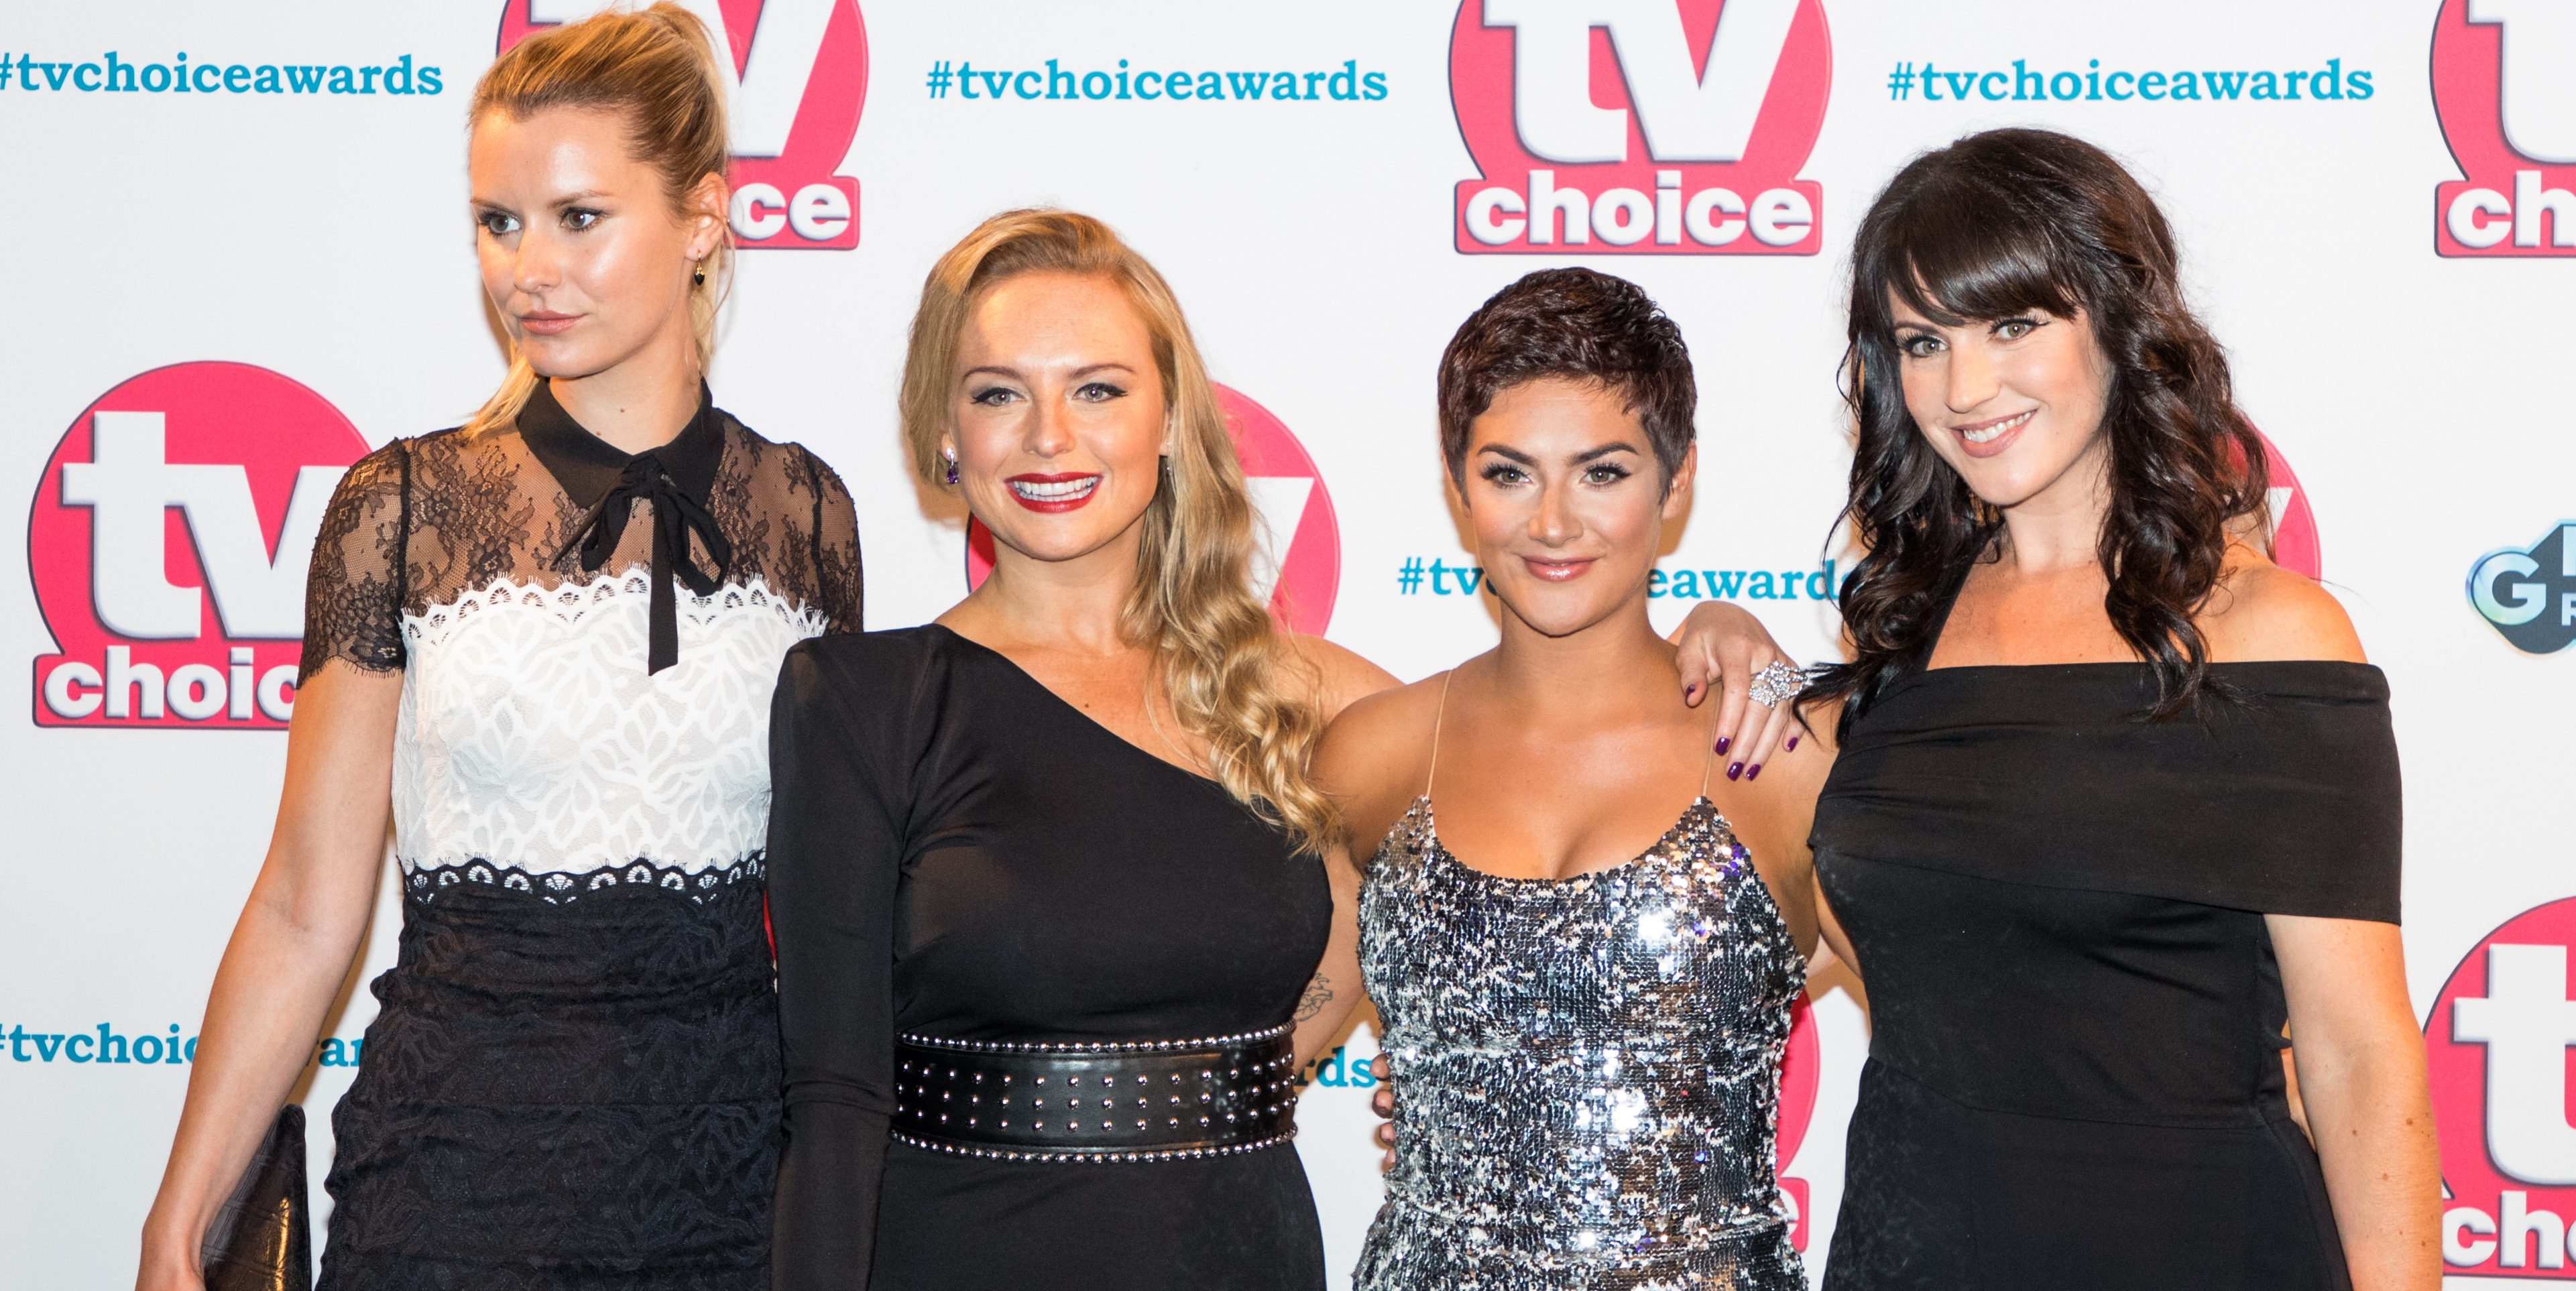 Fans divided as Emmerdale takes home best soap at the TV Choice Awards